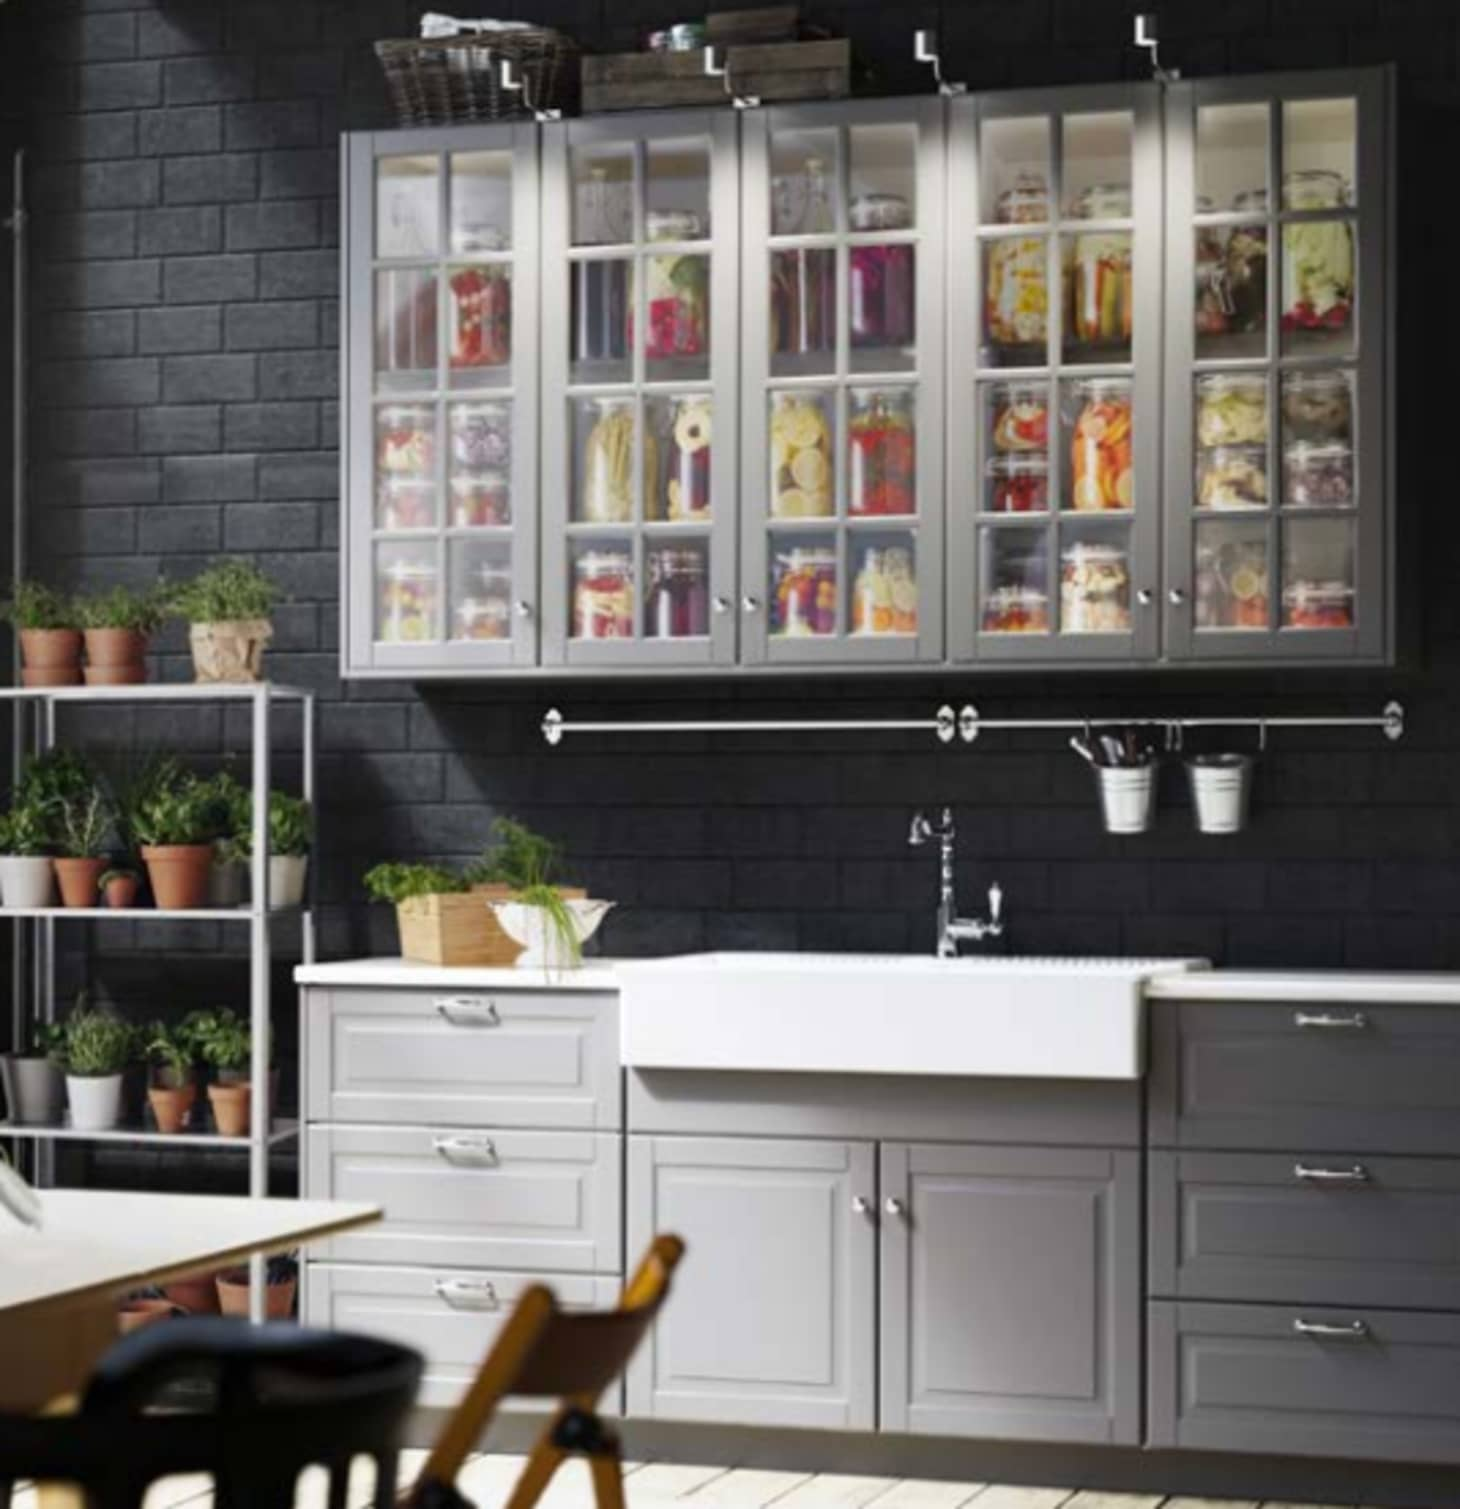 Most Popular Ikea Kitchen Cabinets: IKEA's New SEKTION Cabinets: Sizes, Prices & Photos!